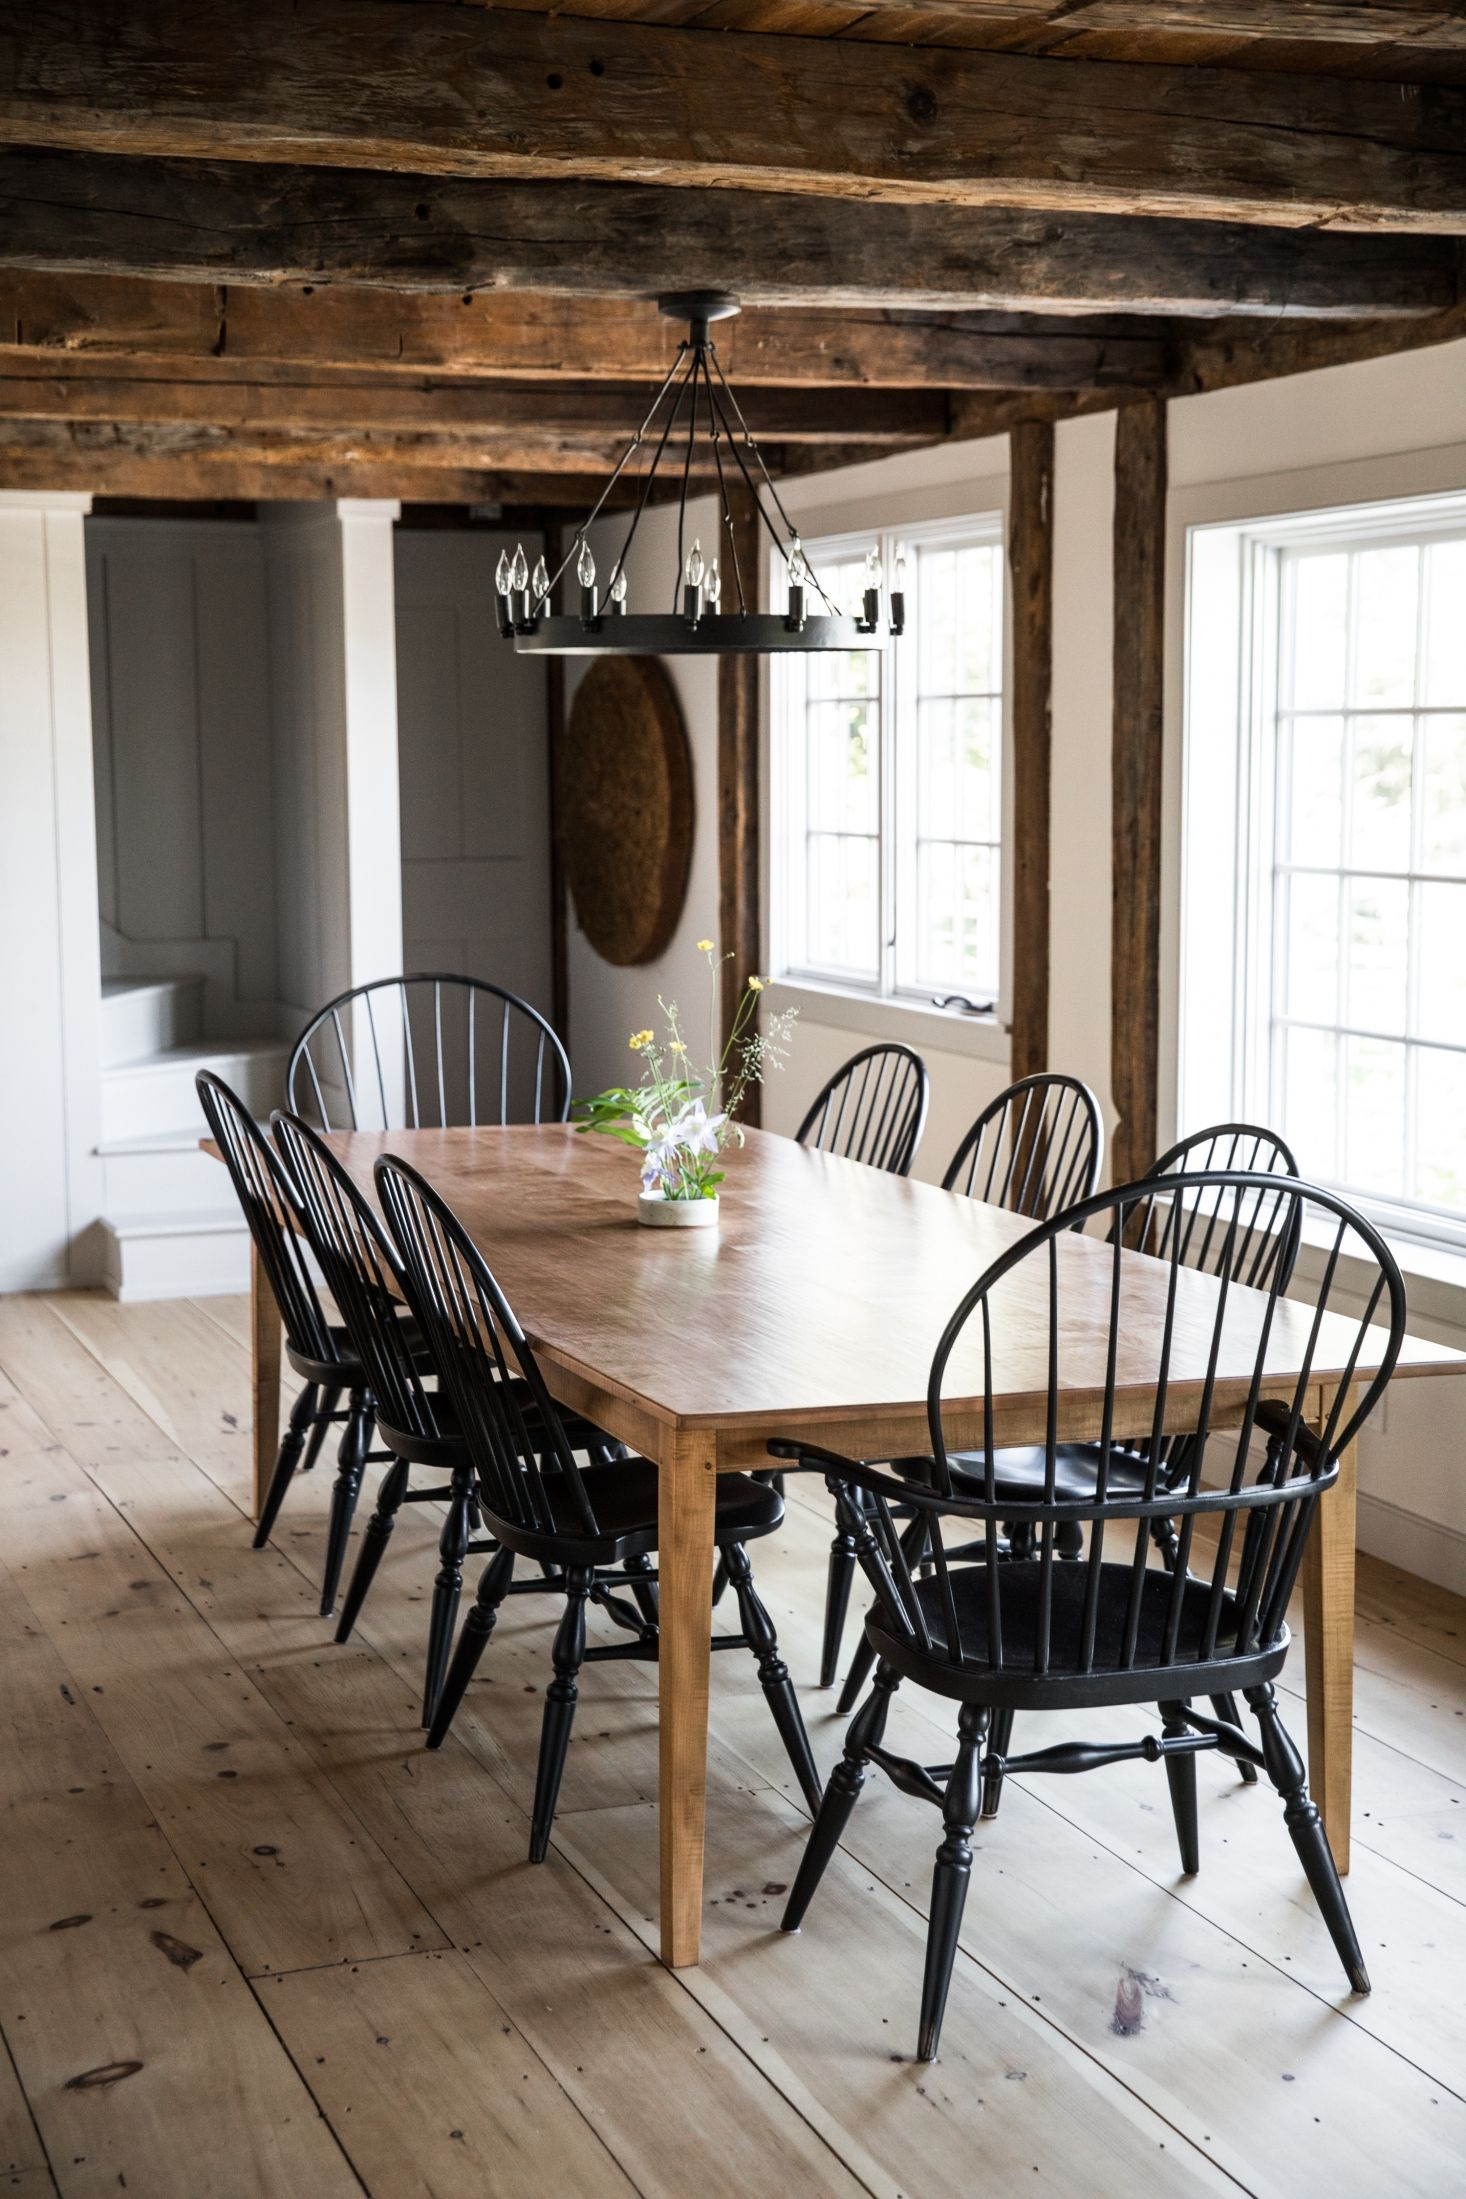 style room luxury furniture awesome cottages country dining sets kitchen table interior graphics french cottage of